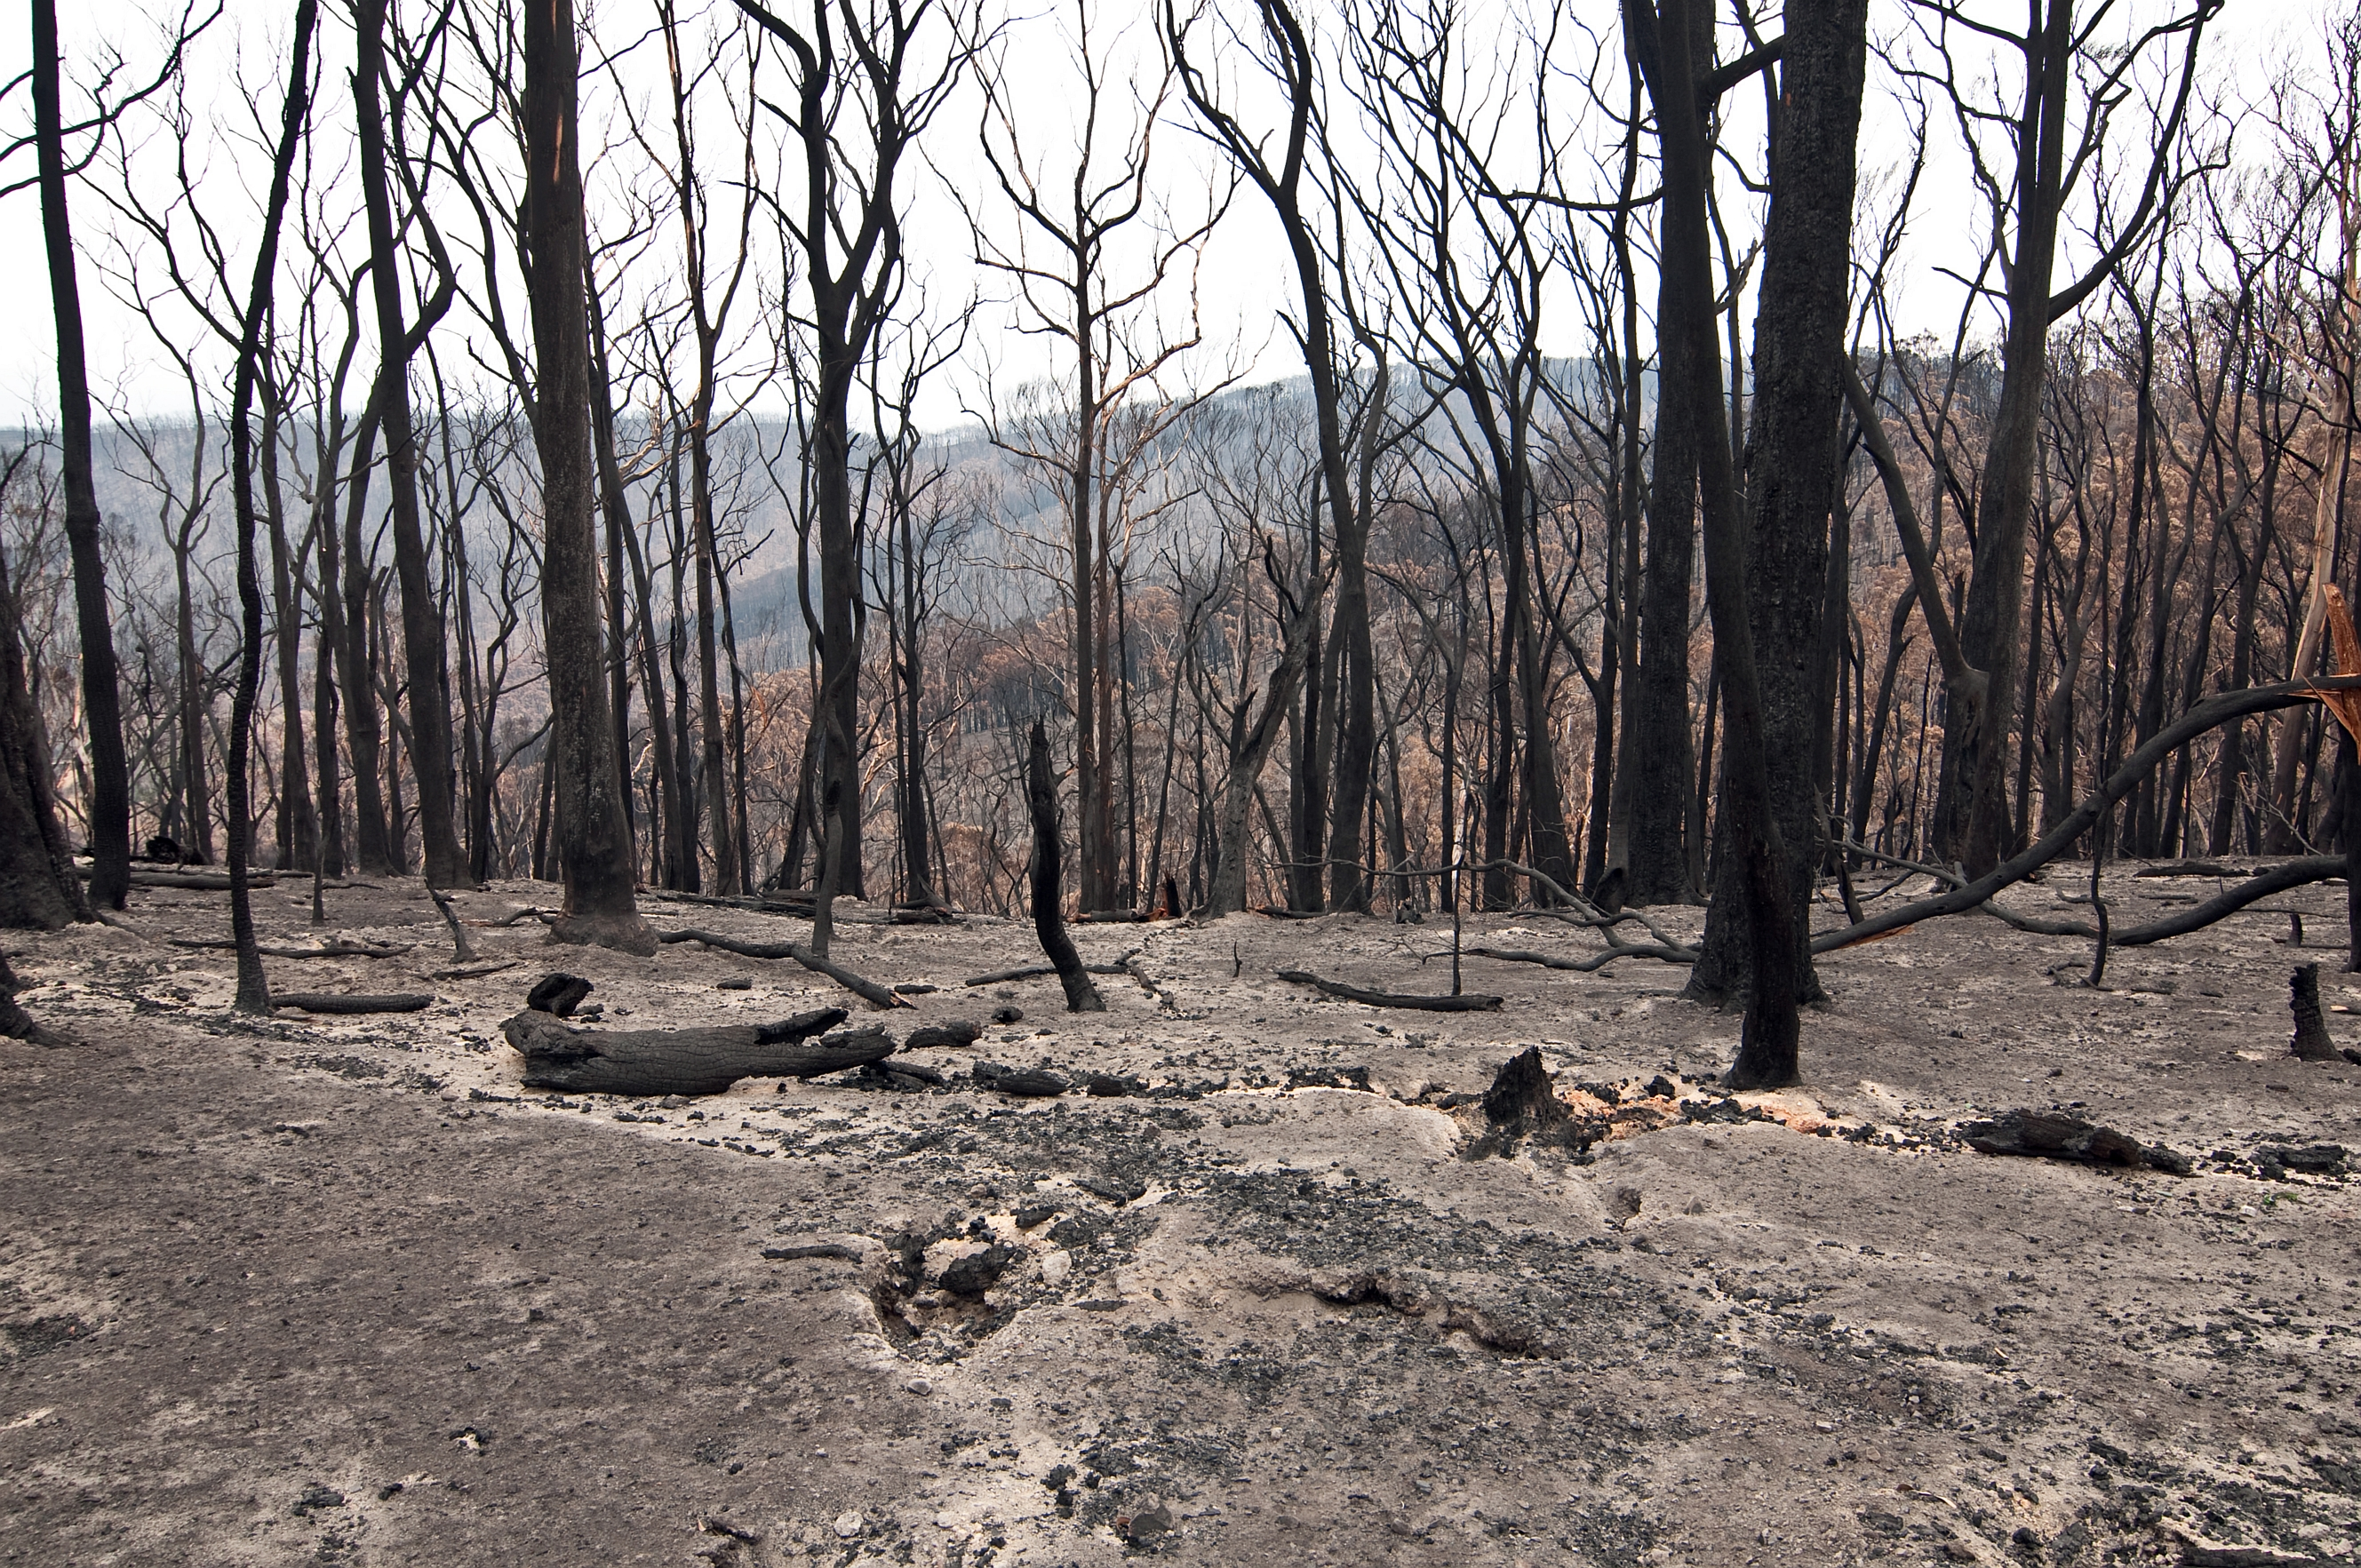 Image of blackened, dead trees and bare earth in Kinglake national park following black saturday